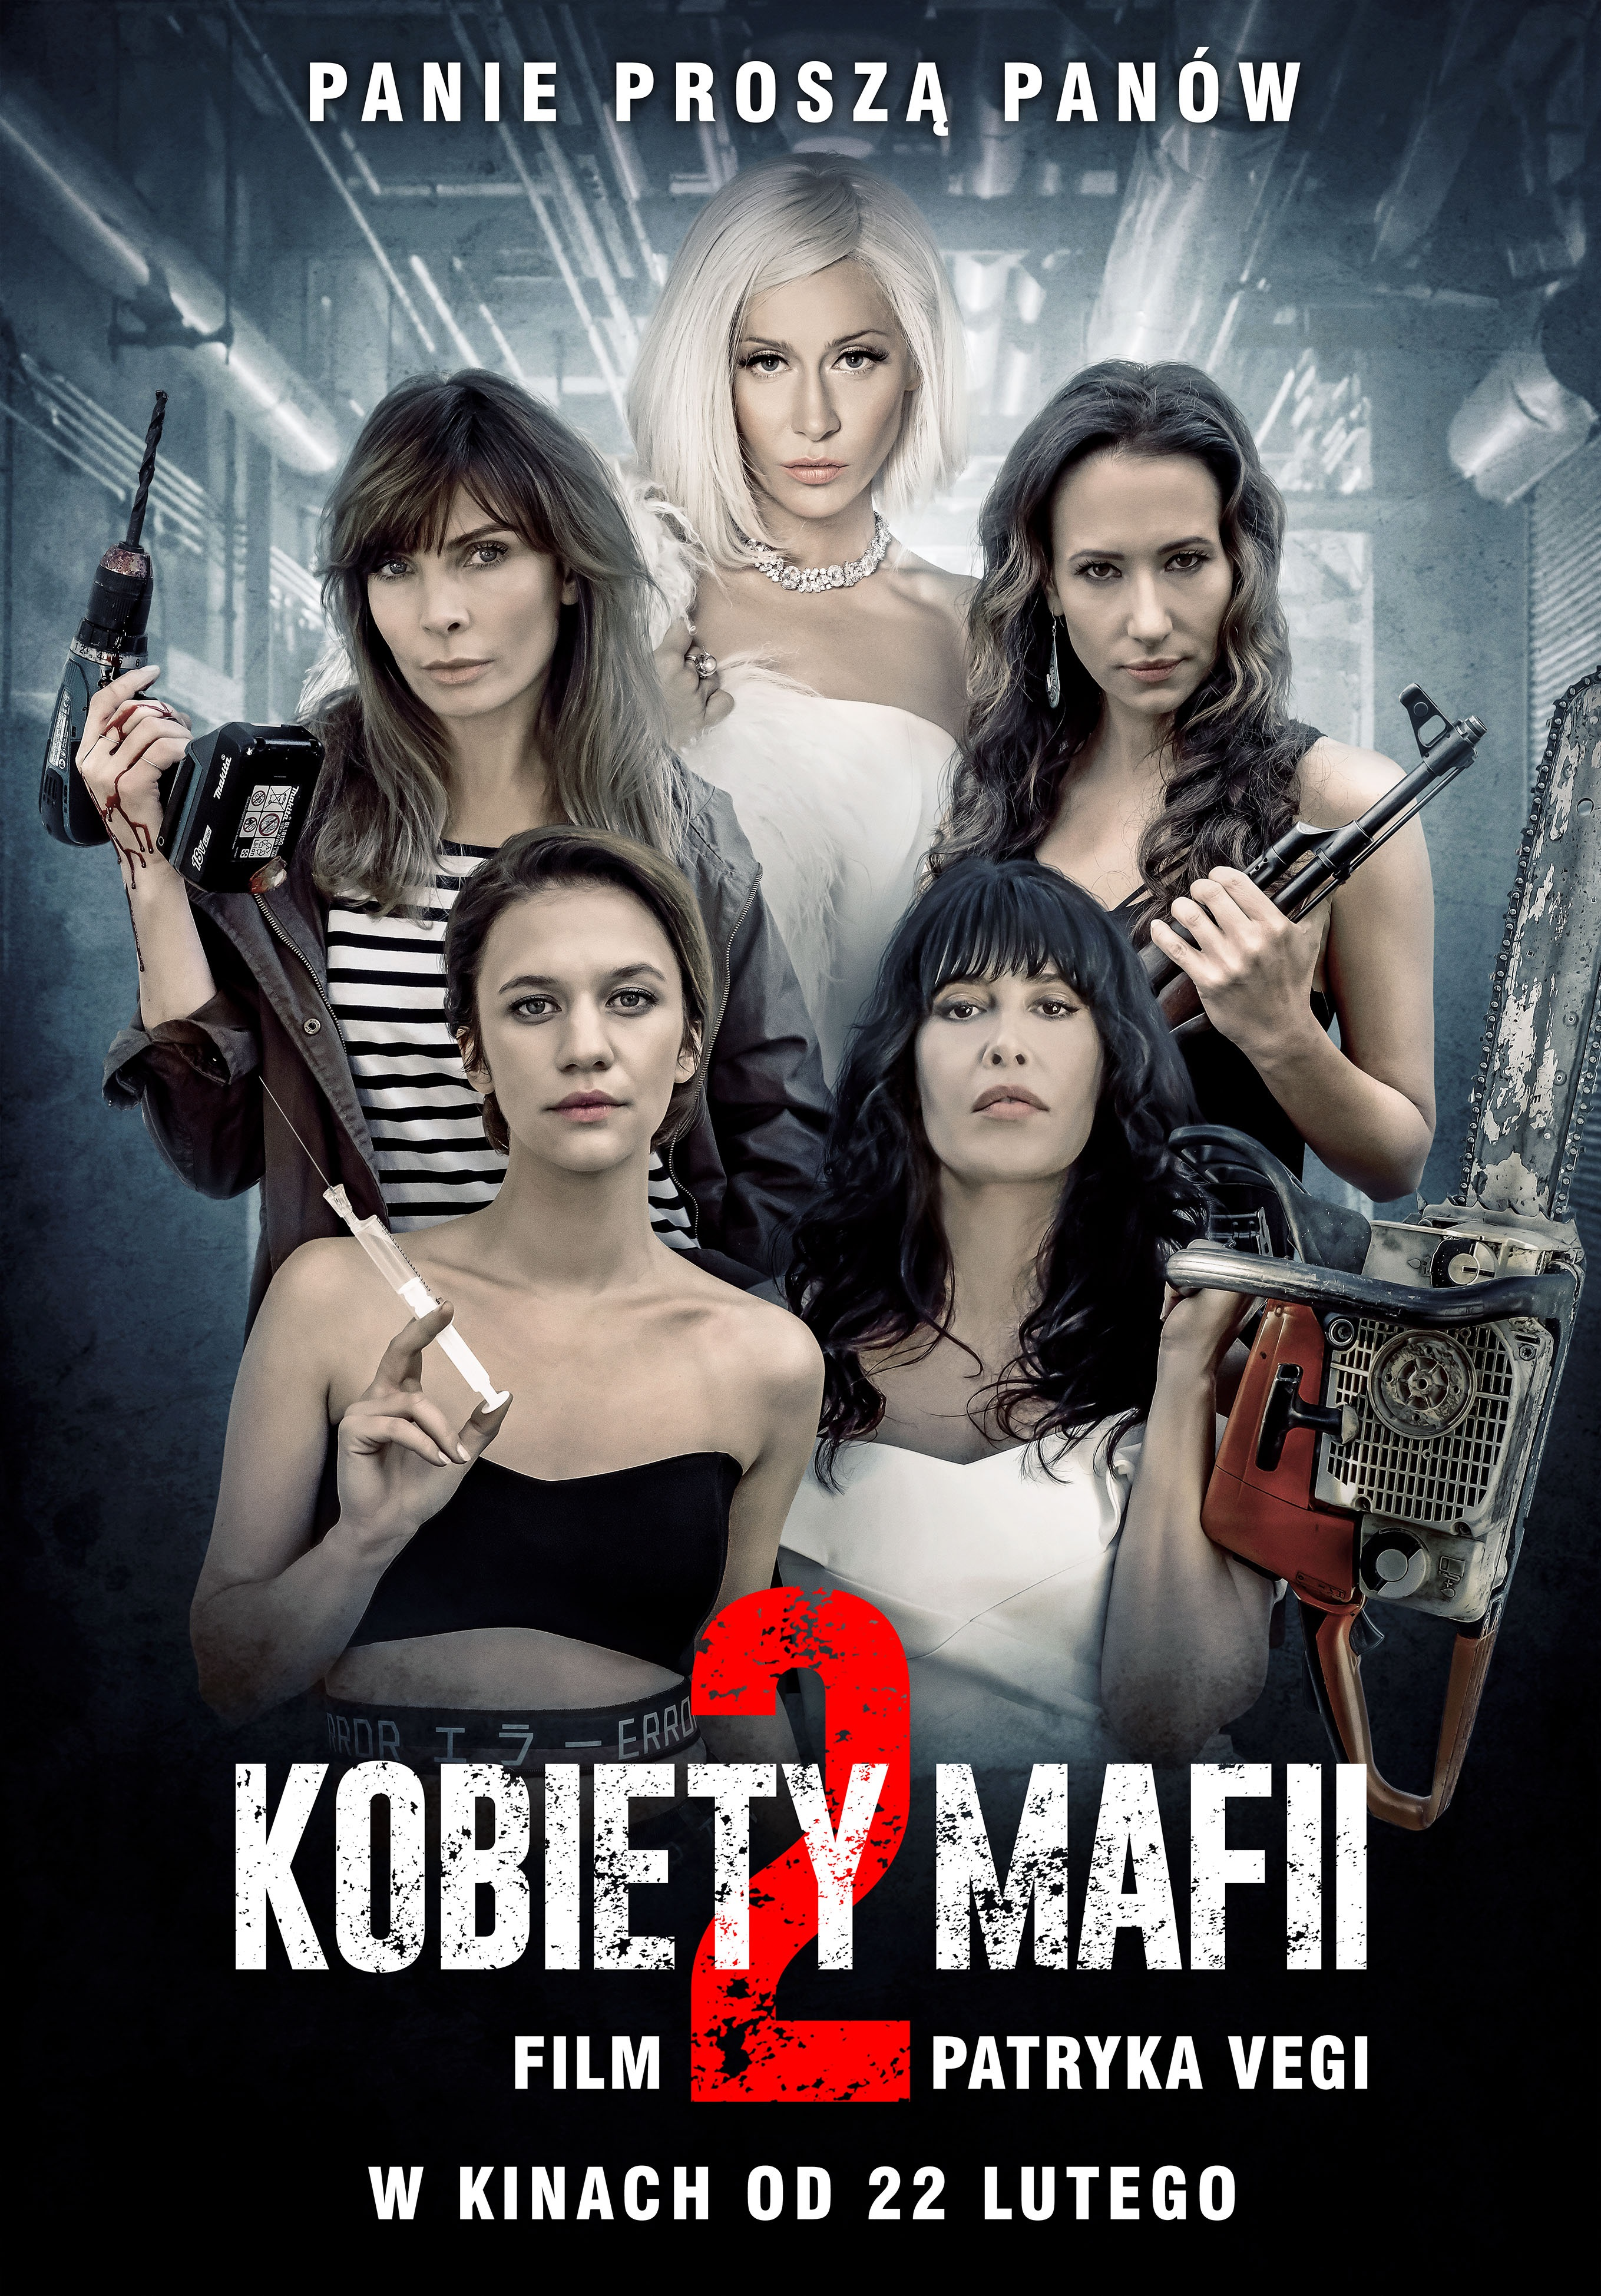 Moterų mafija 2 (2019) / Women of Mafia 2